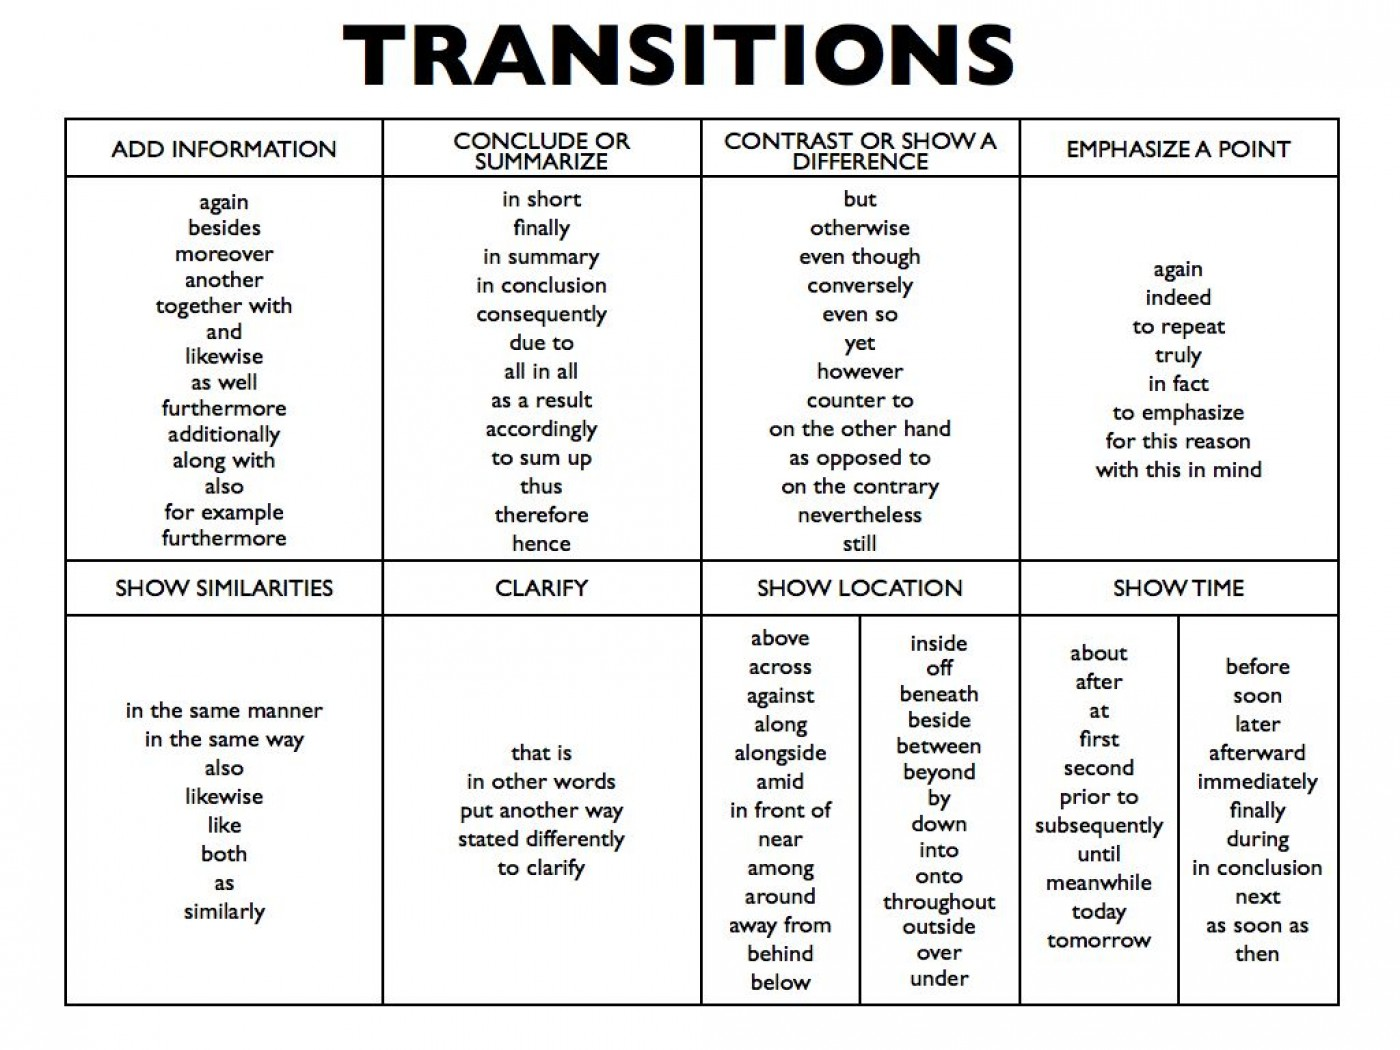 005 Essay Example Transitions 4995883 1 Orig Archaicawful Transition Words Introduction Persuasive List Writing Pdf 1400